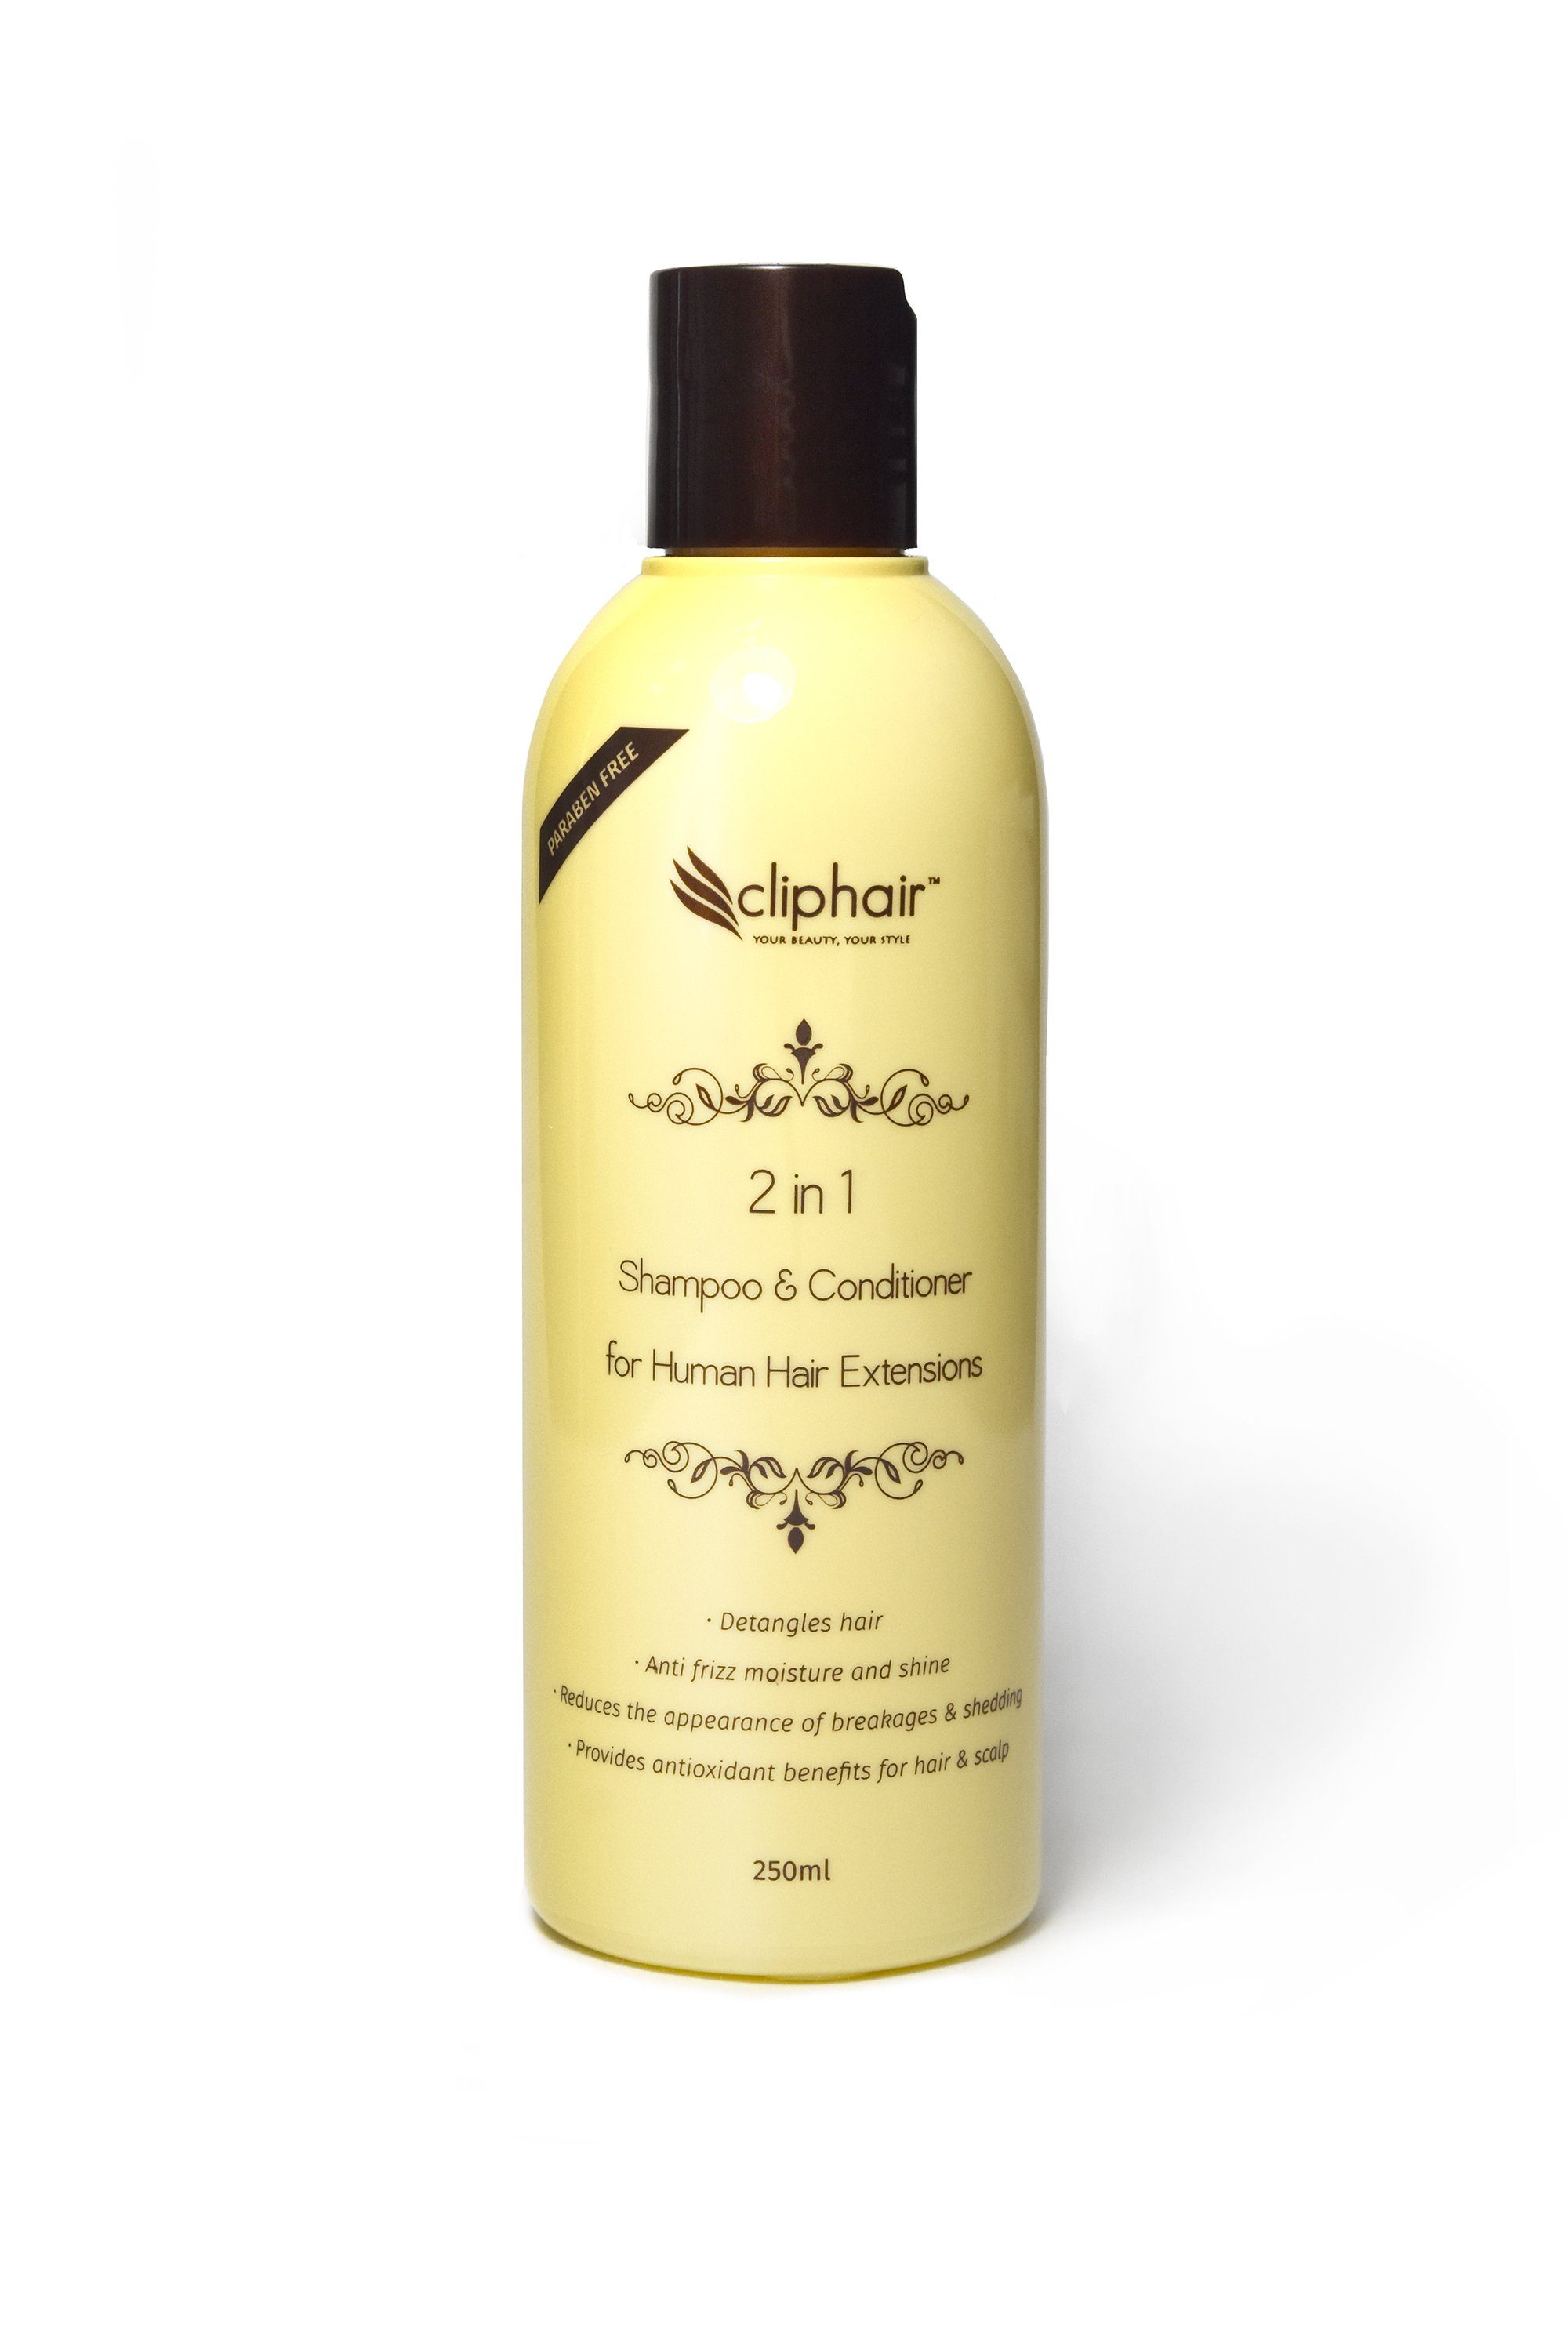 shampoo conditioner for hair extensions best for human hair extensions